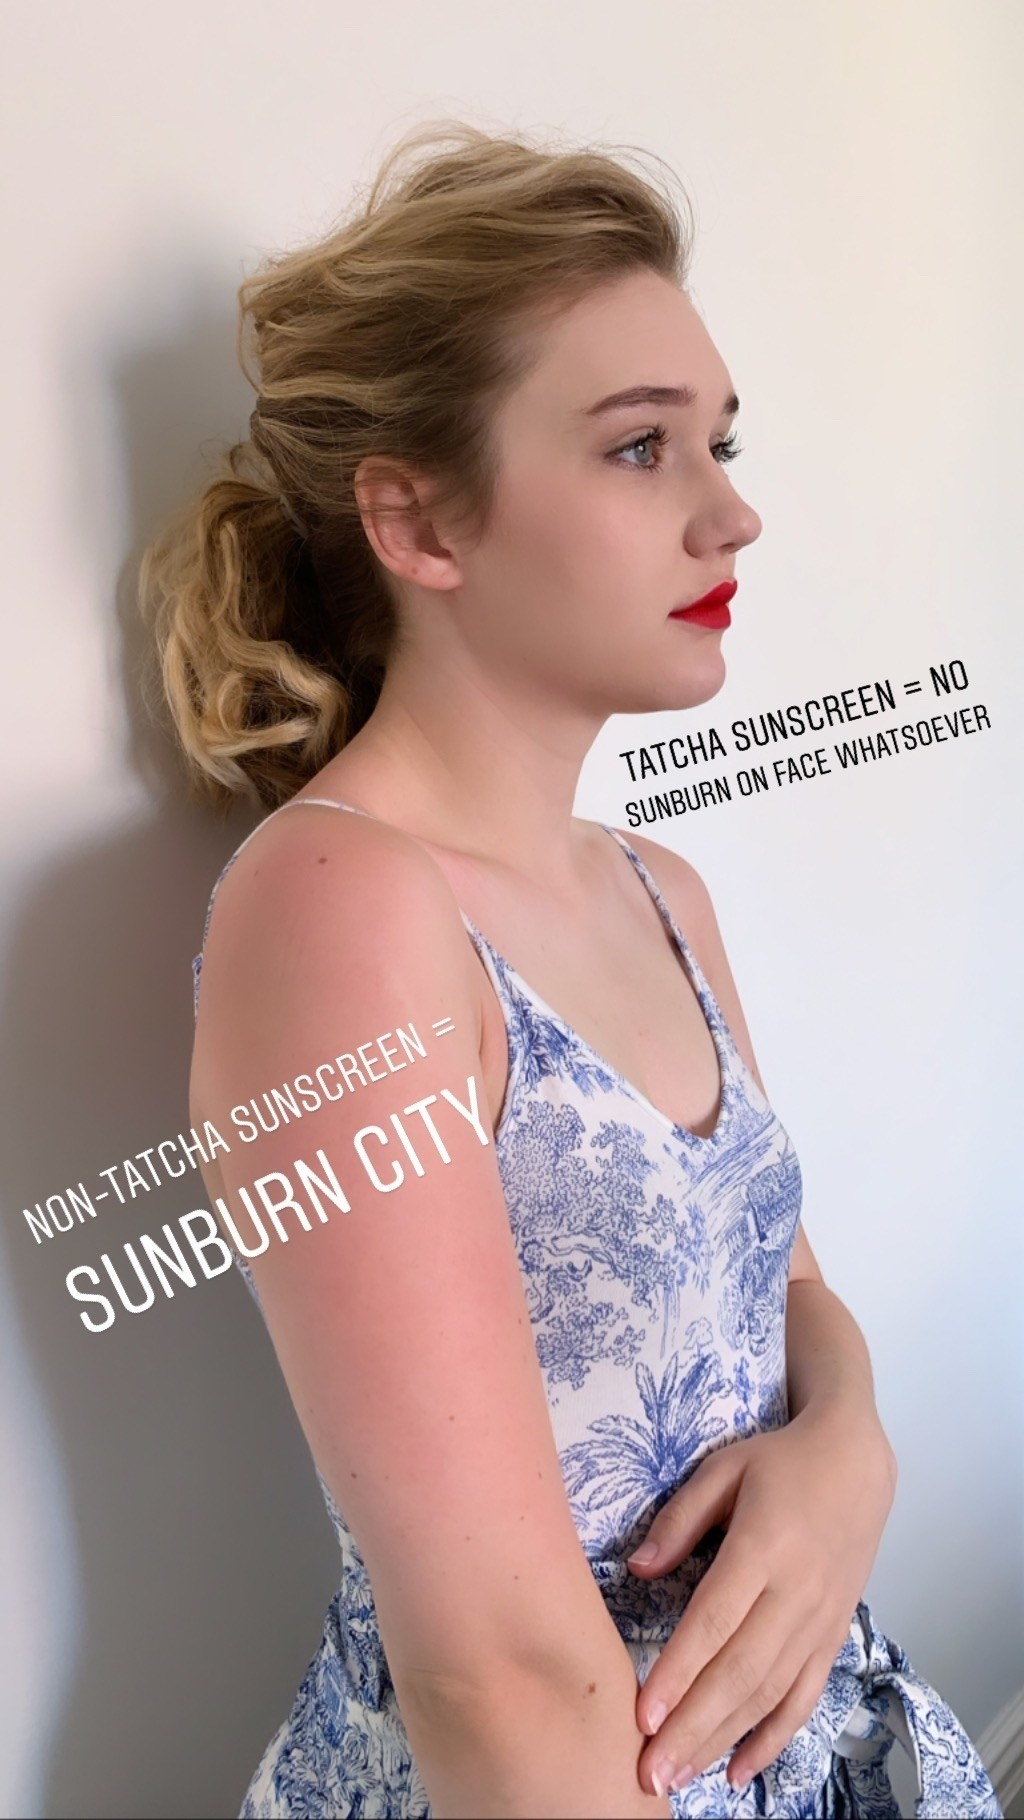 BuzzFeed Shopping reviewer's picture to show her arm sunburnt after wearing other sunscreen, but her face free of sunburns thanks to Tatcha sunscreen